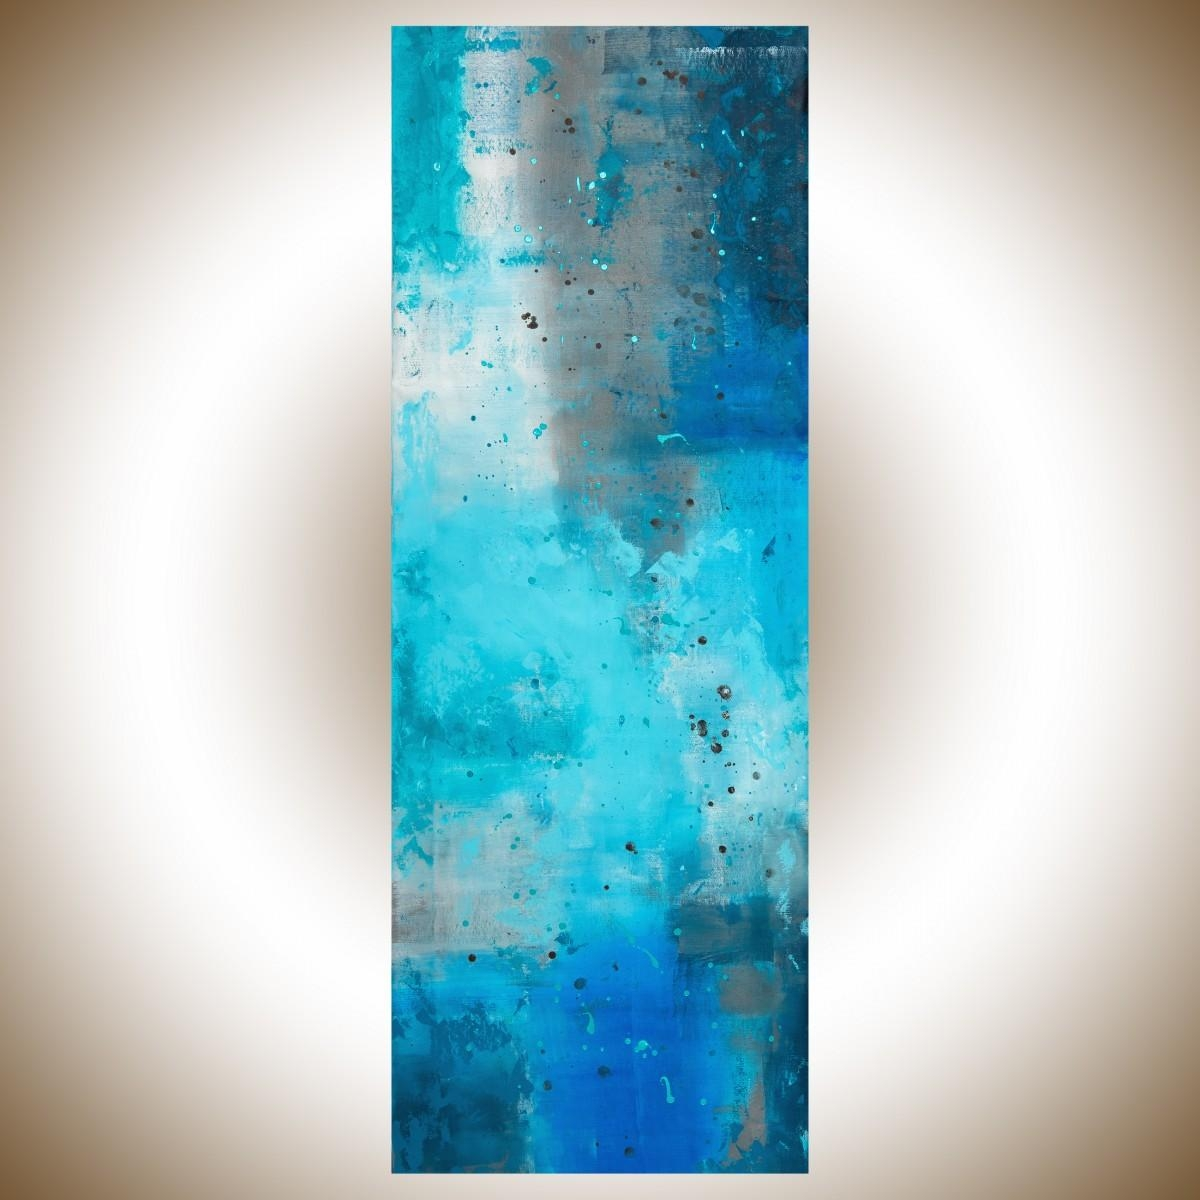 "The Mistqiqigallery 70""x24"" Un Stretched Canvas Original Regarding Turquoise And Brown Wall Art (View 19 of 20)"